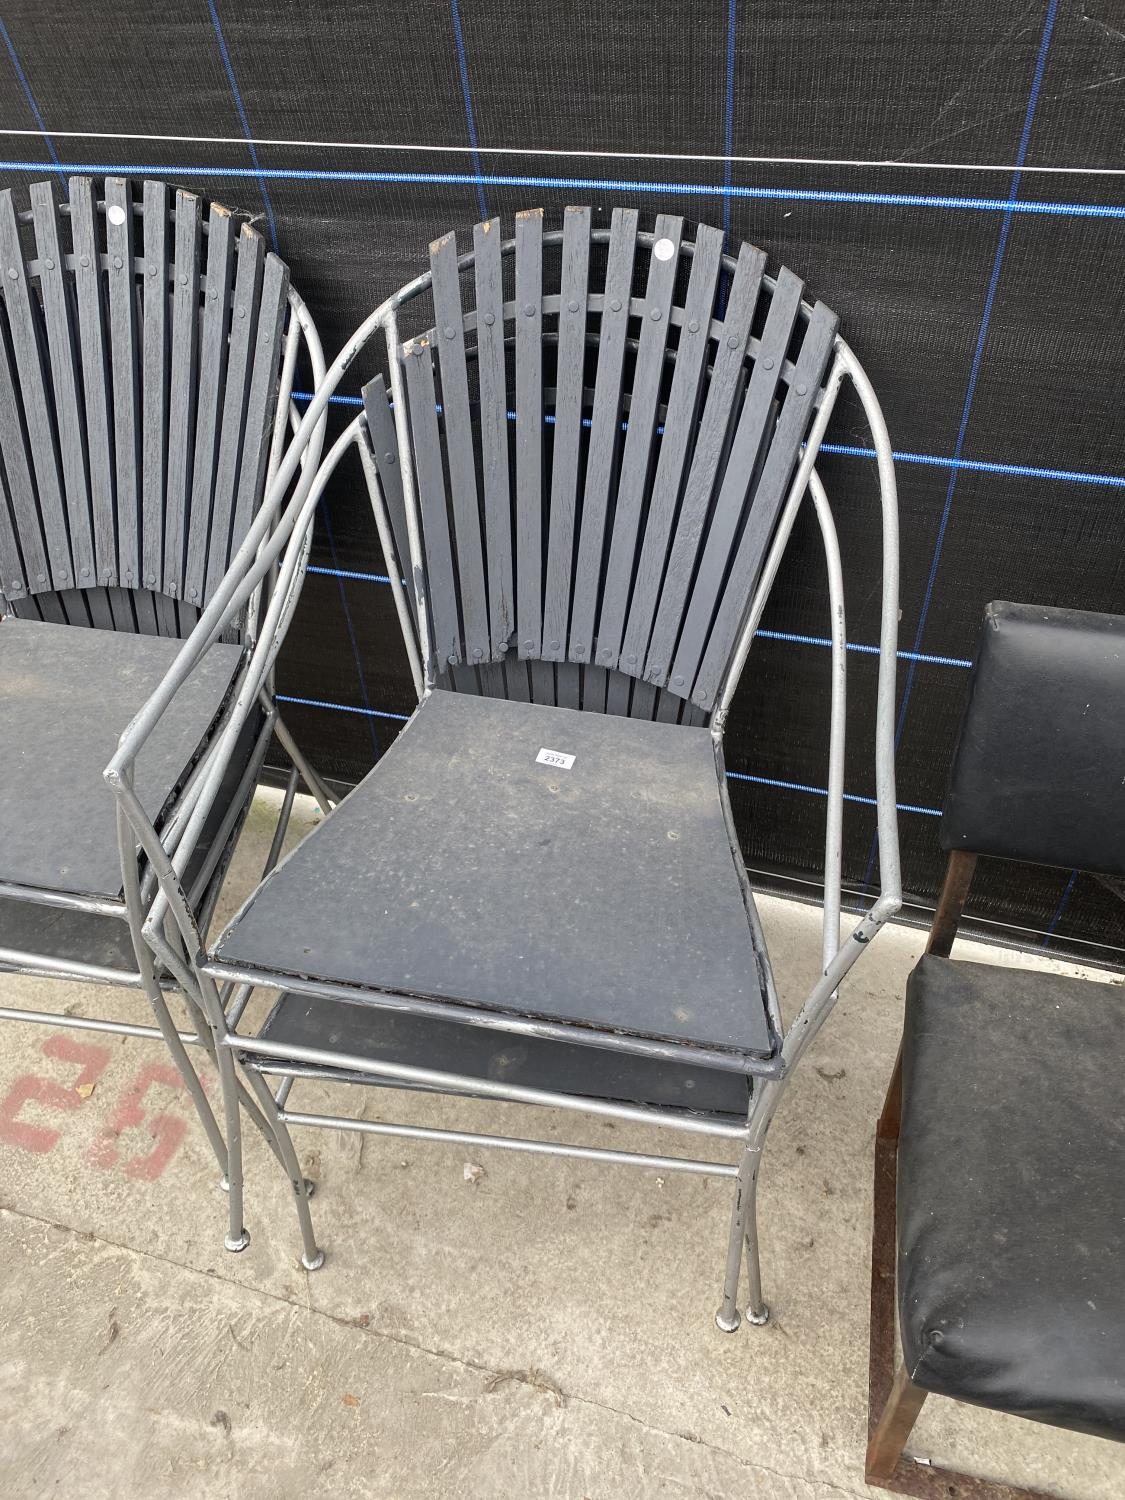 FOUR METAL FRAMED PATIO CHAIRS - Image 2 of 4